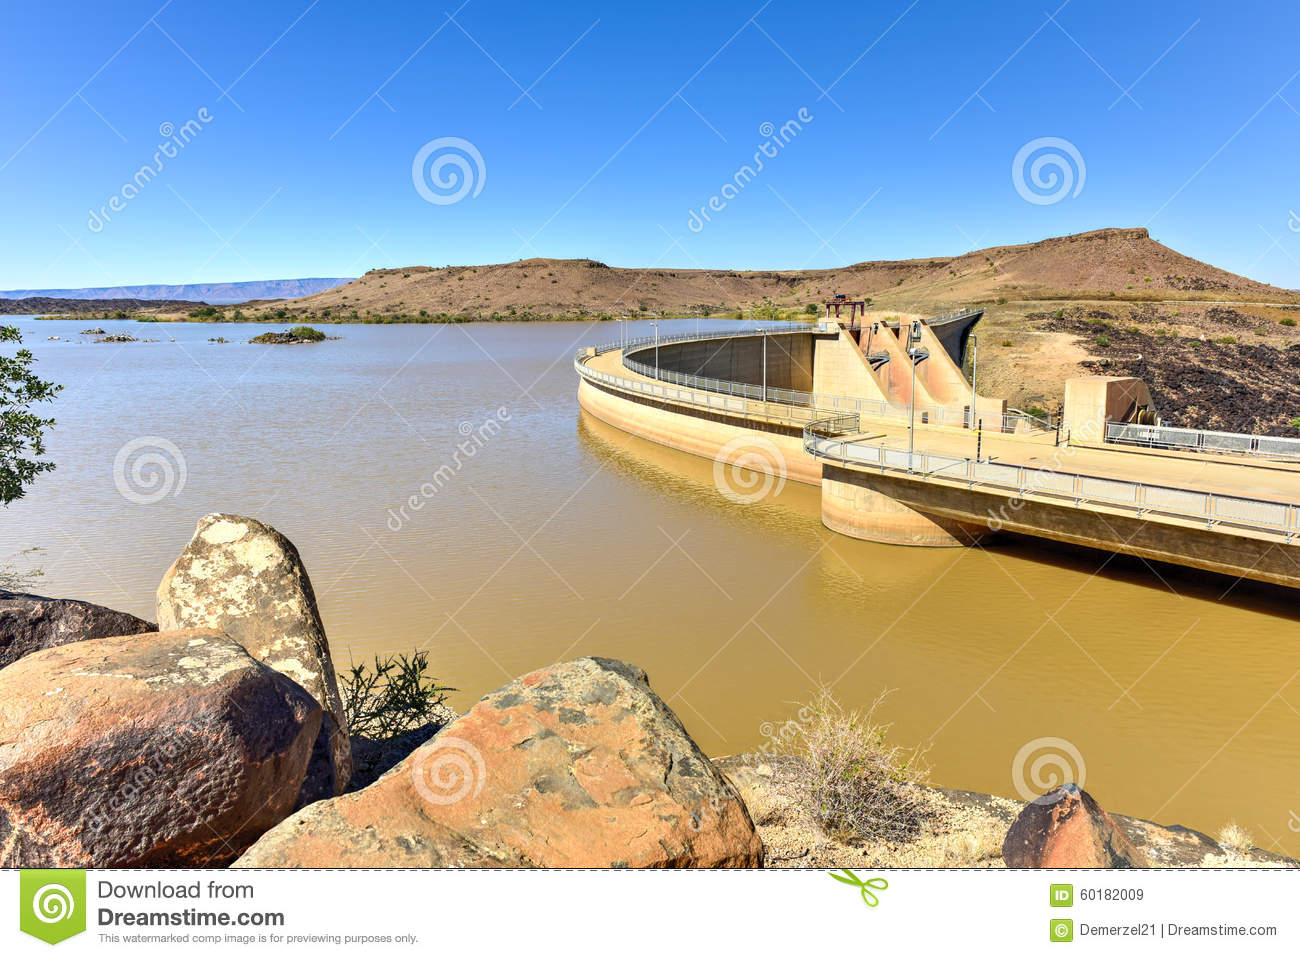 Keetmanshoop Stock Photos, Images, & Pictures.